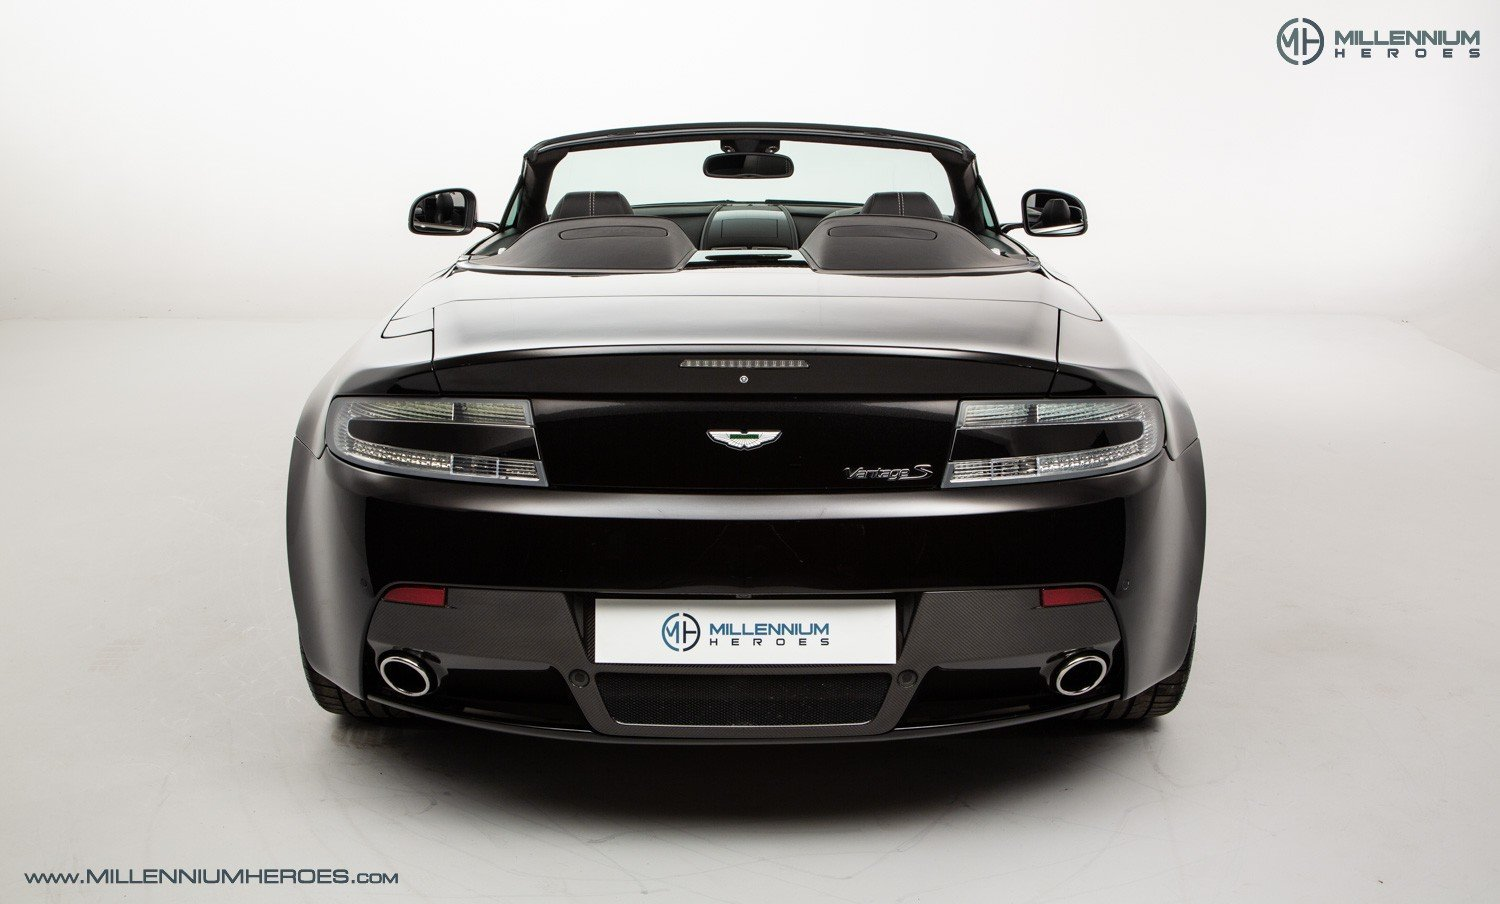 2013 ASTON MARTIN V8 VANTAGE S // AM WARRANTY // FULL AM HISTORY  For Sale (picture 11 of 23)